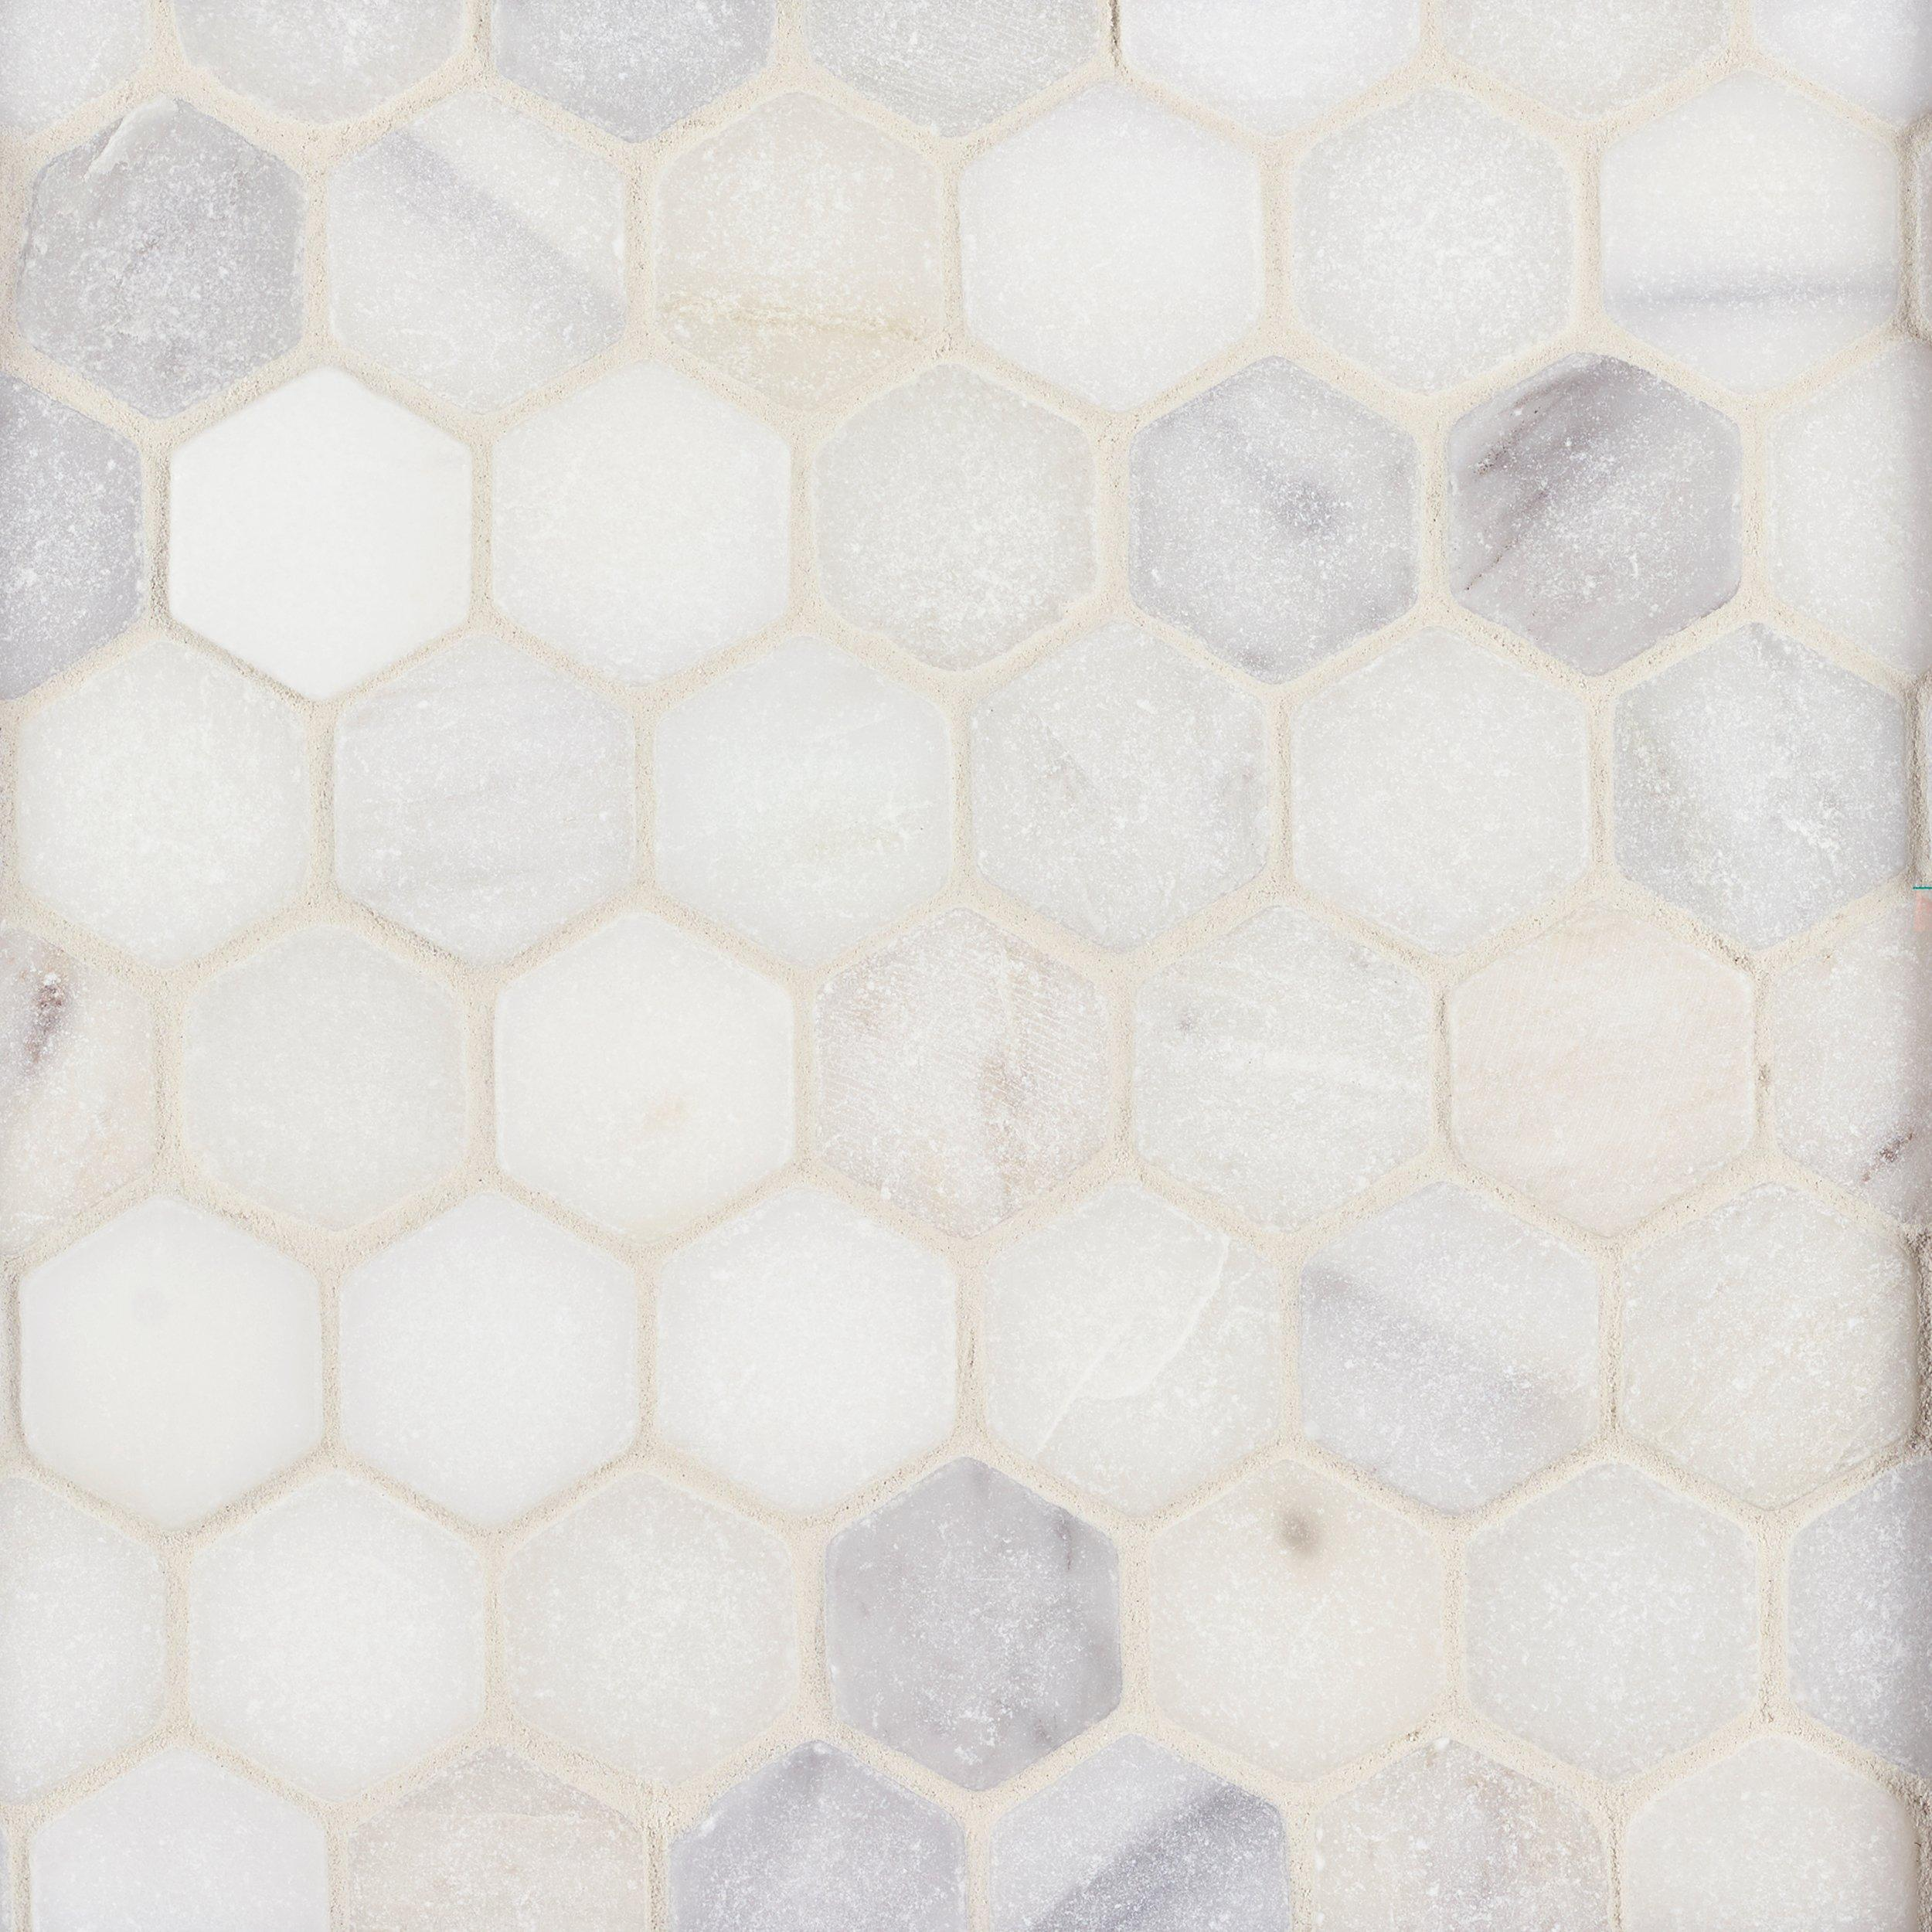 Hexagon Gray White Oak Marble Stone Metallic Gray Glass Mosaic Tile Backsplash Home Improvement Building Hardware